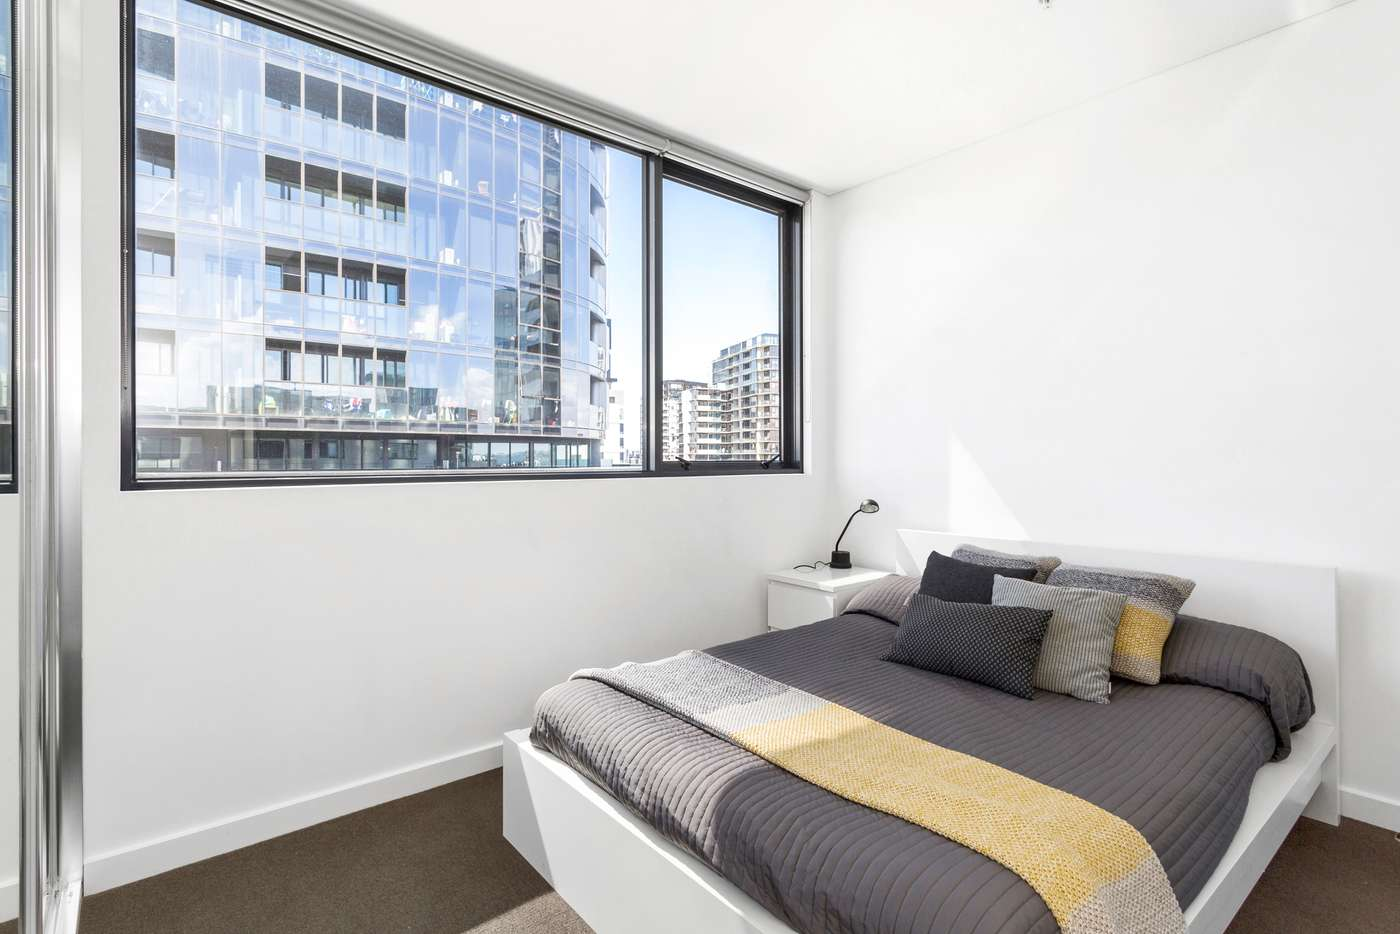 Sixth view of Homely apartment listing, 1007/700 Chapel Street, South Yarra VIC 3141